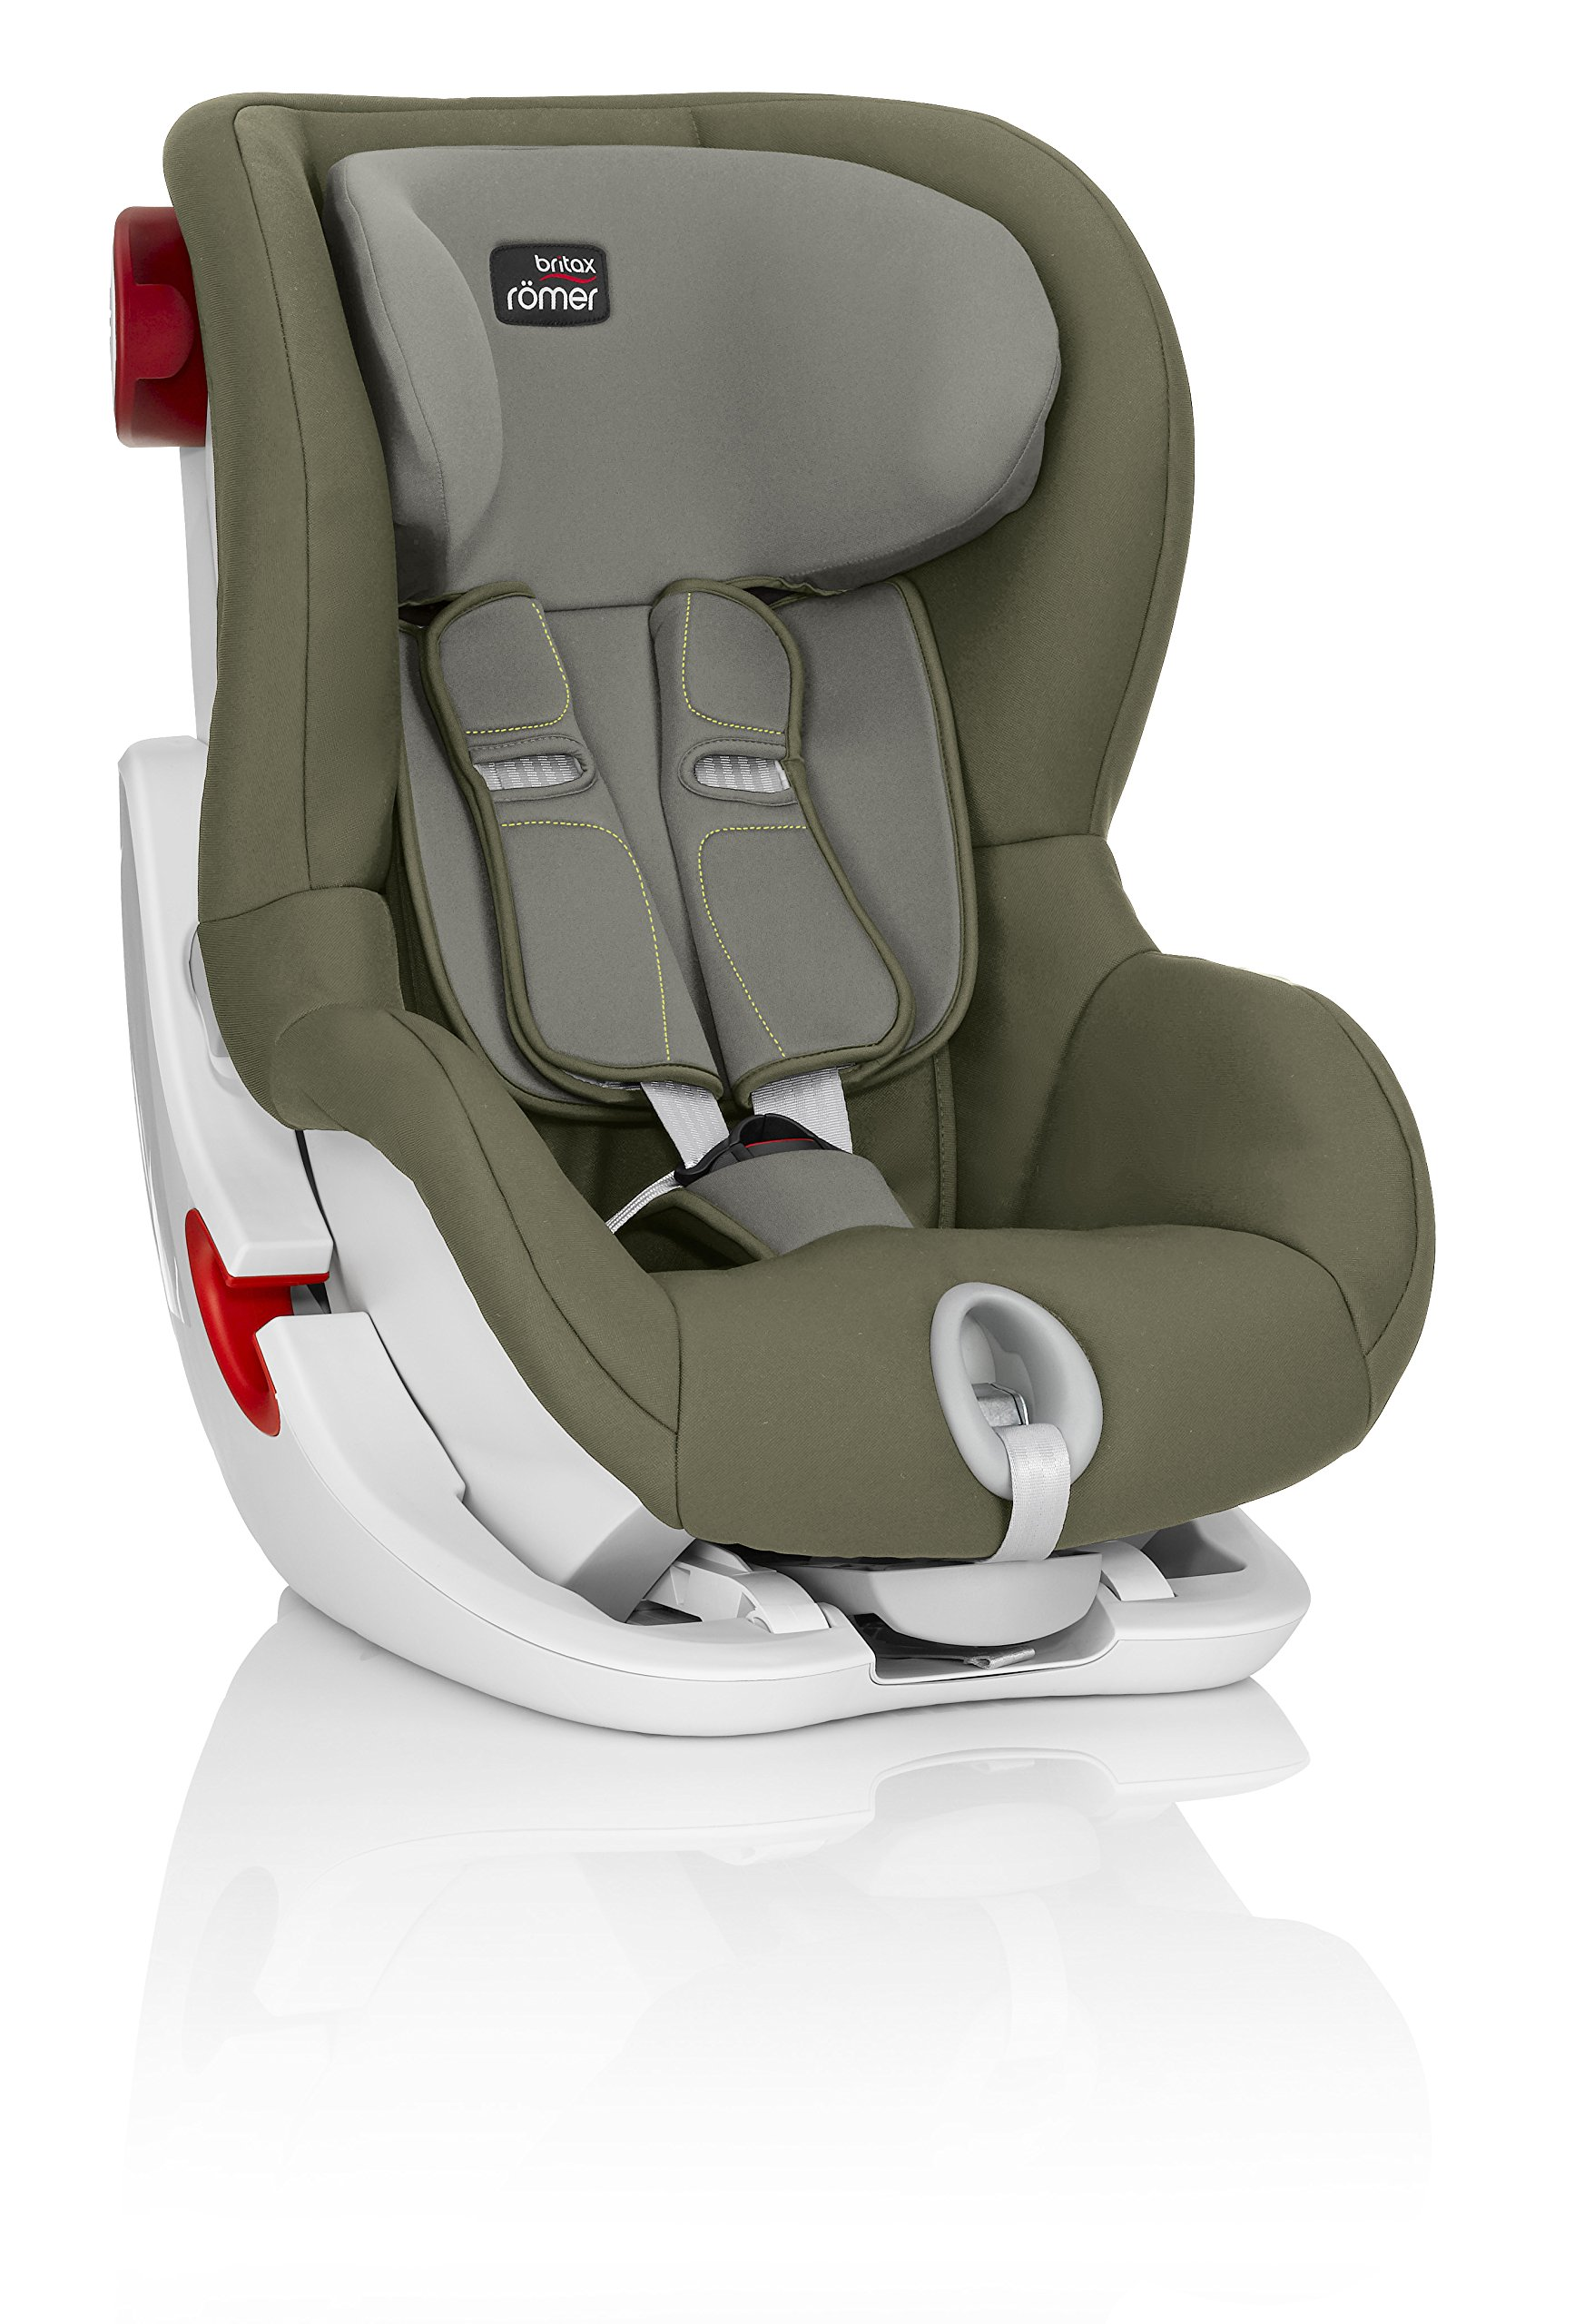 Britax Römer King II Car Seat, Olive Green Britax Römer Easy installation - with tilting seat and patented seat belt tensioning system Optimum protection - performance chest pads, deep, padded side wings 4